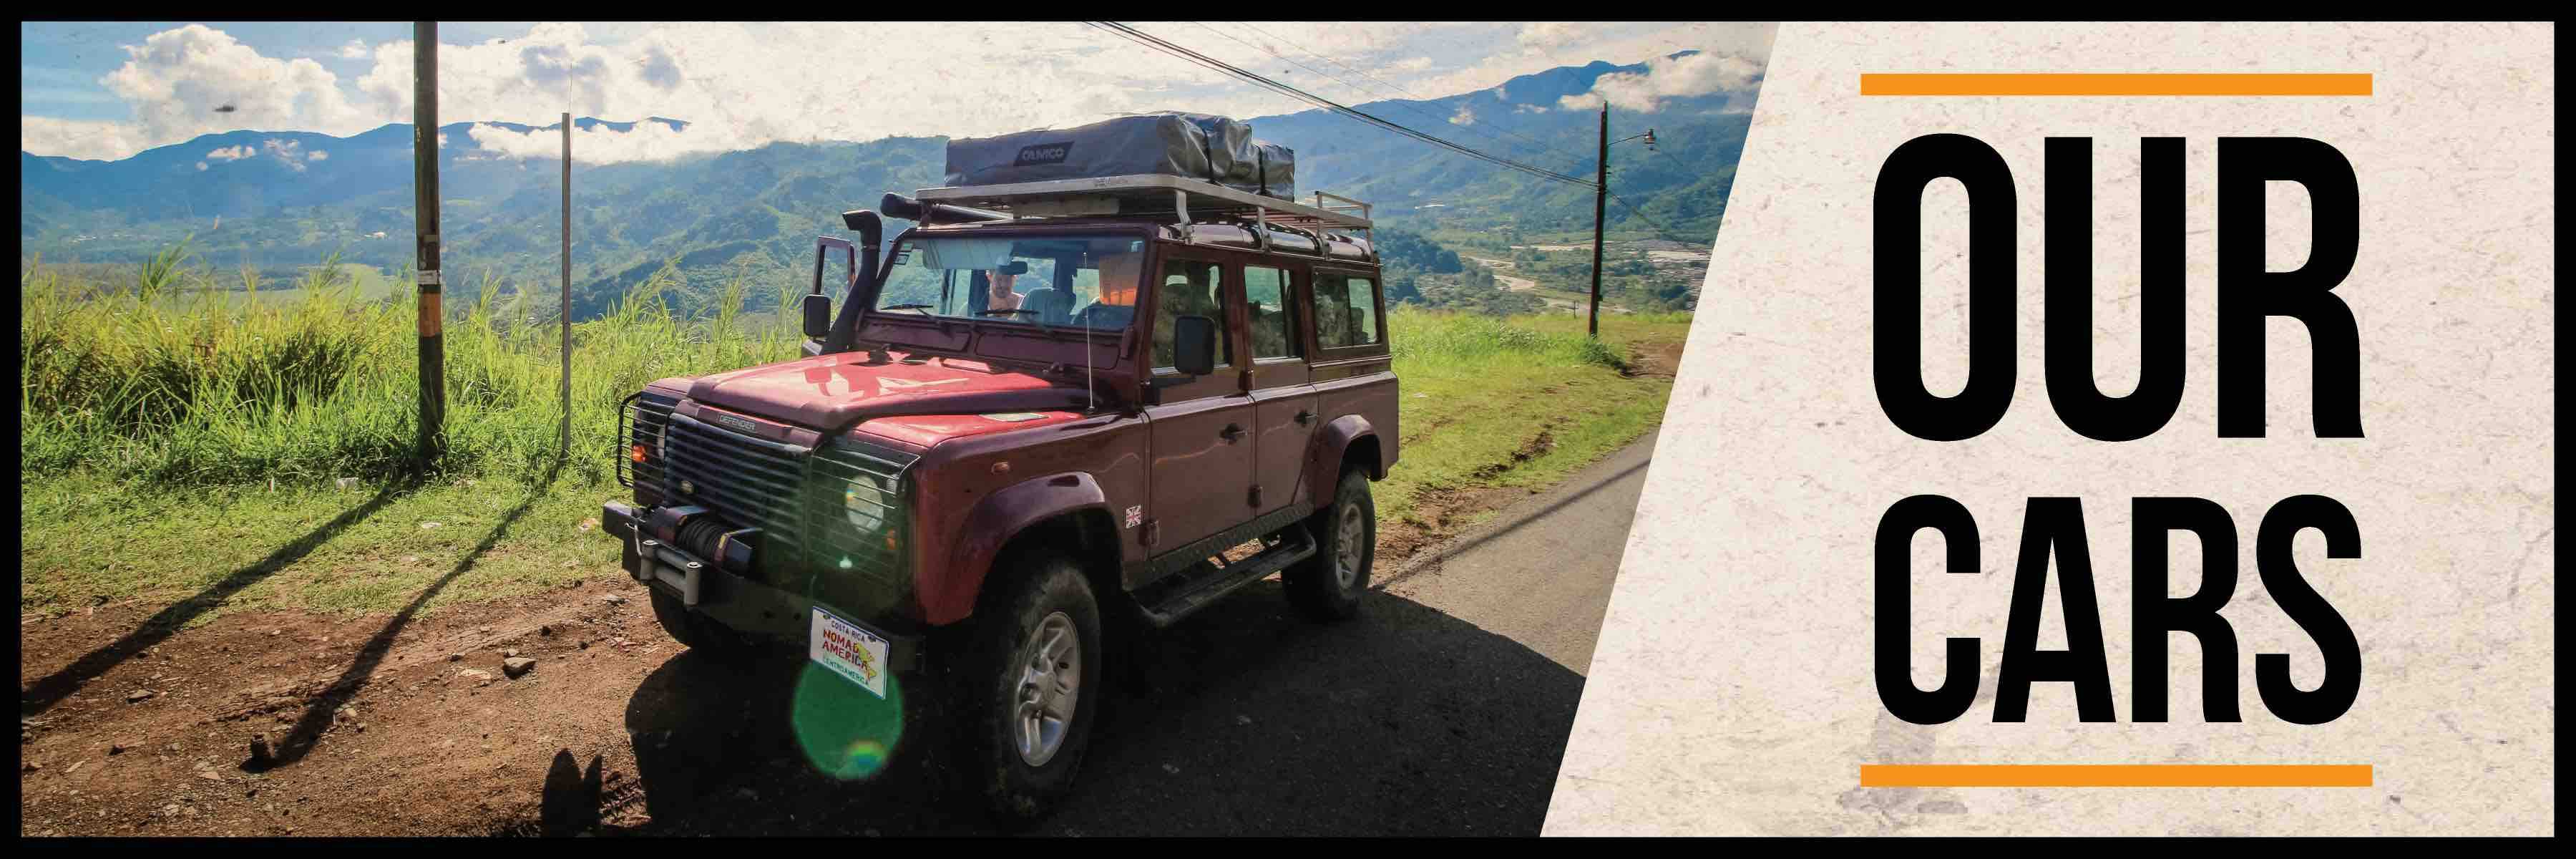 Best 4x4 rentals in Costa Rica - Land Cruisers - Land Rovers - Jeep Wranglers